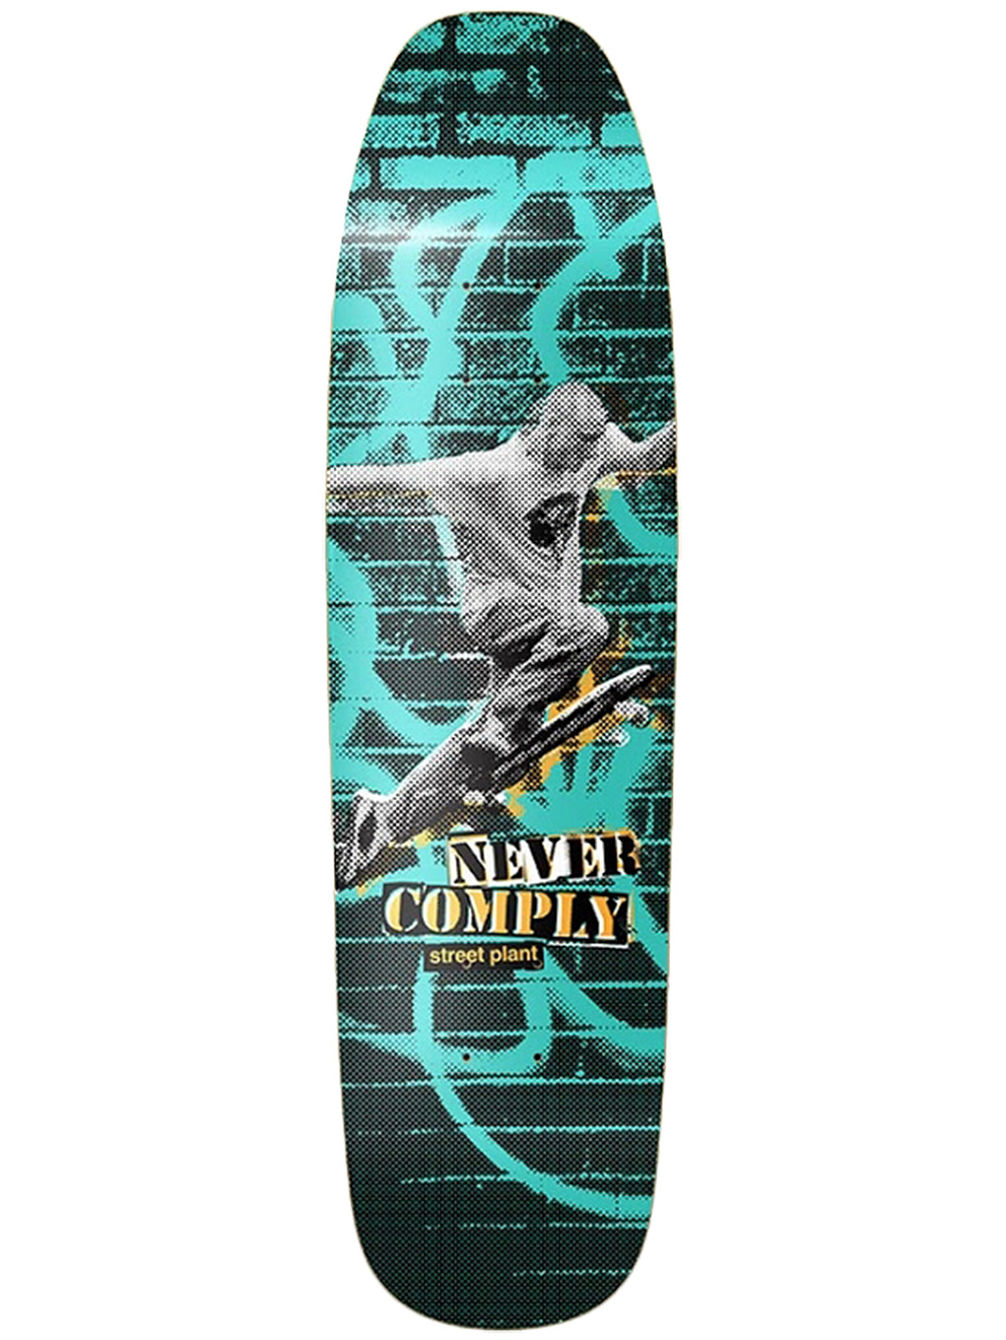 street-plant-never-comply-85-x-32-deck